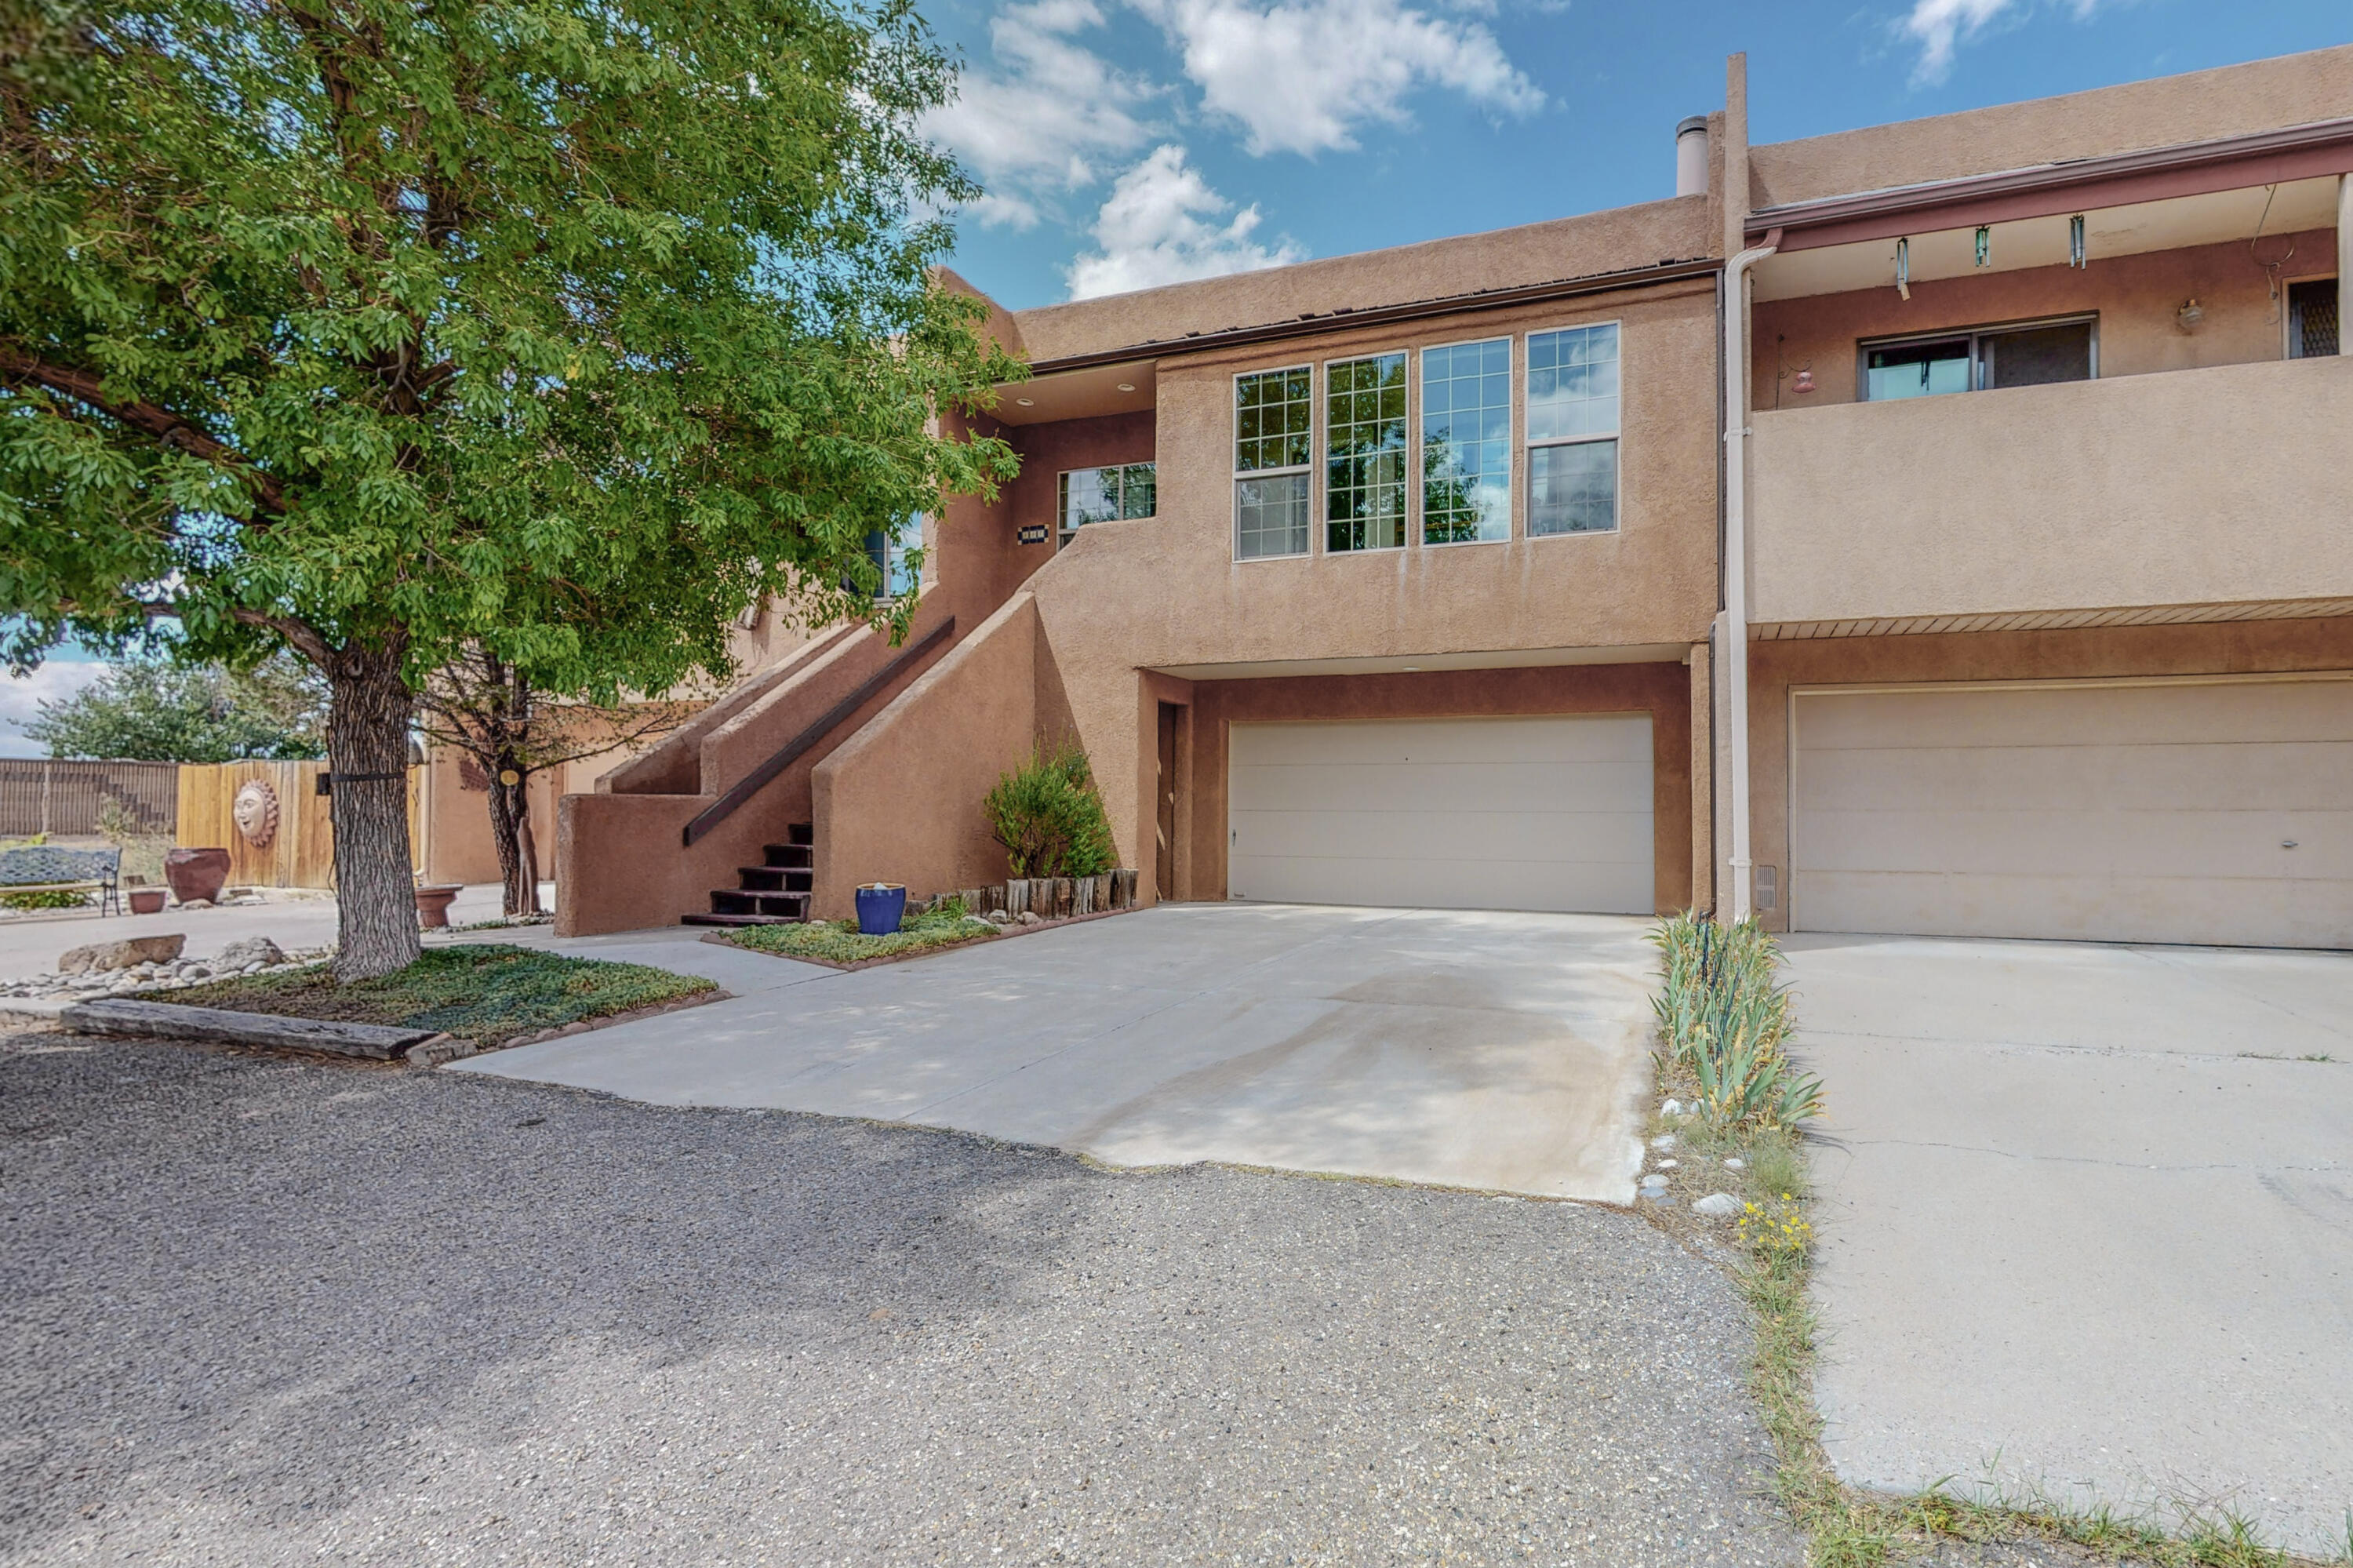 This large two story townhouse (2100+ square feet) in Sandia Heights in the Sandia Mountain foothills offers a large open living, dining area with mountain and city view. There are two possible master bedrooms and many upgrades include a TPO roof and skylights, 2020, water heater and heating boiler in 2021, new stucco 2019.  Remodeled baths and tile floor in kitchen and new cooler and windows in 2014. There is a country feel open space in front and close access to bike/jogging paths and hiking trails. The back courtyard is minimal maintenance The interior is bright and airy with 9 skylights.  There is ample storage and an oversized garage. The entry foyer/sunroom is a nice area to relax in and it provides passive solar heating for the home. Check out this Sandia Heights townhouse NOW!